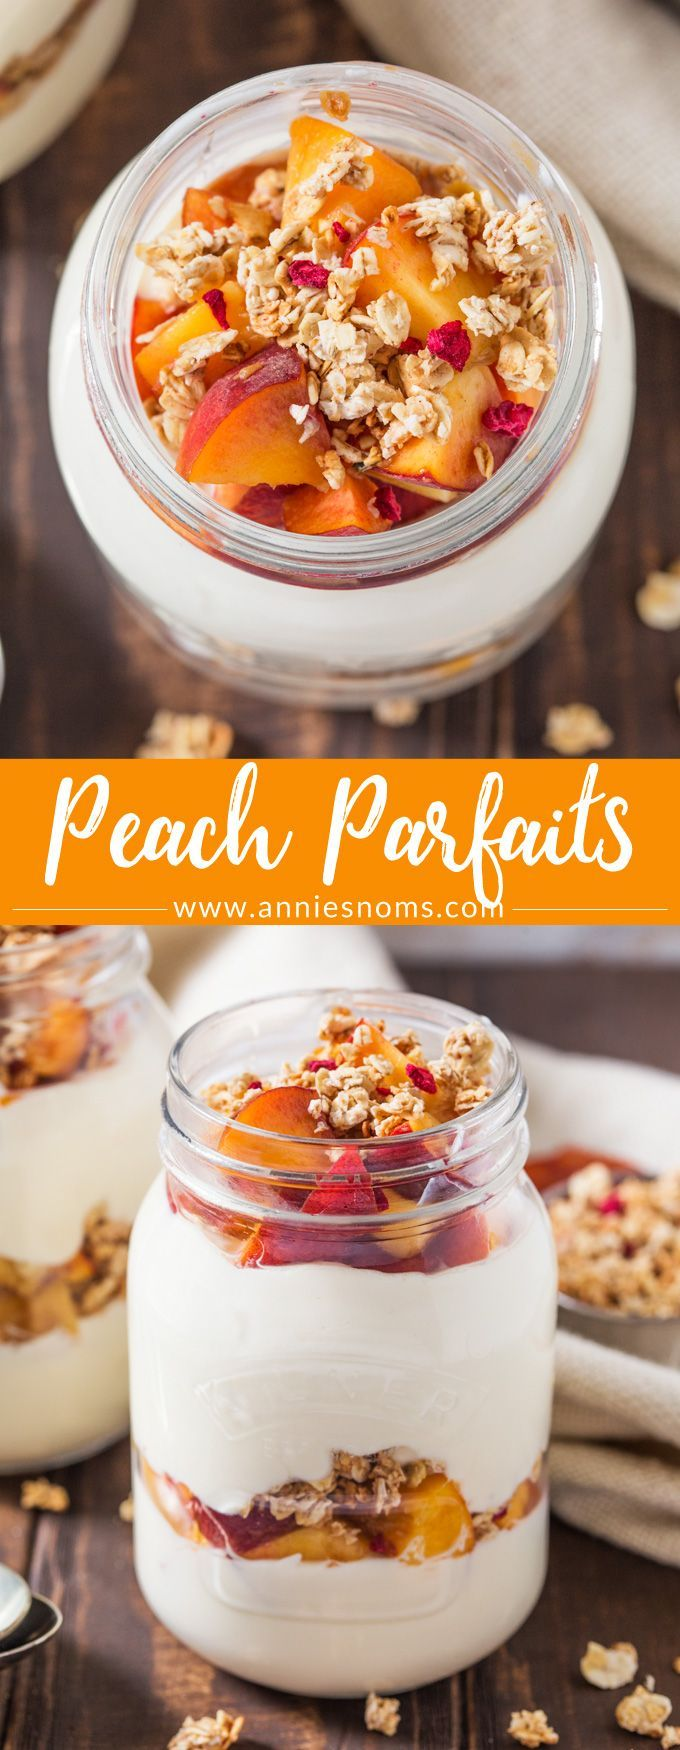 These Peach Parfaits are made with creamy Greek yoghurt, sweet peaches and crunchy granola; you decide whether these are breakfast or dessert!